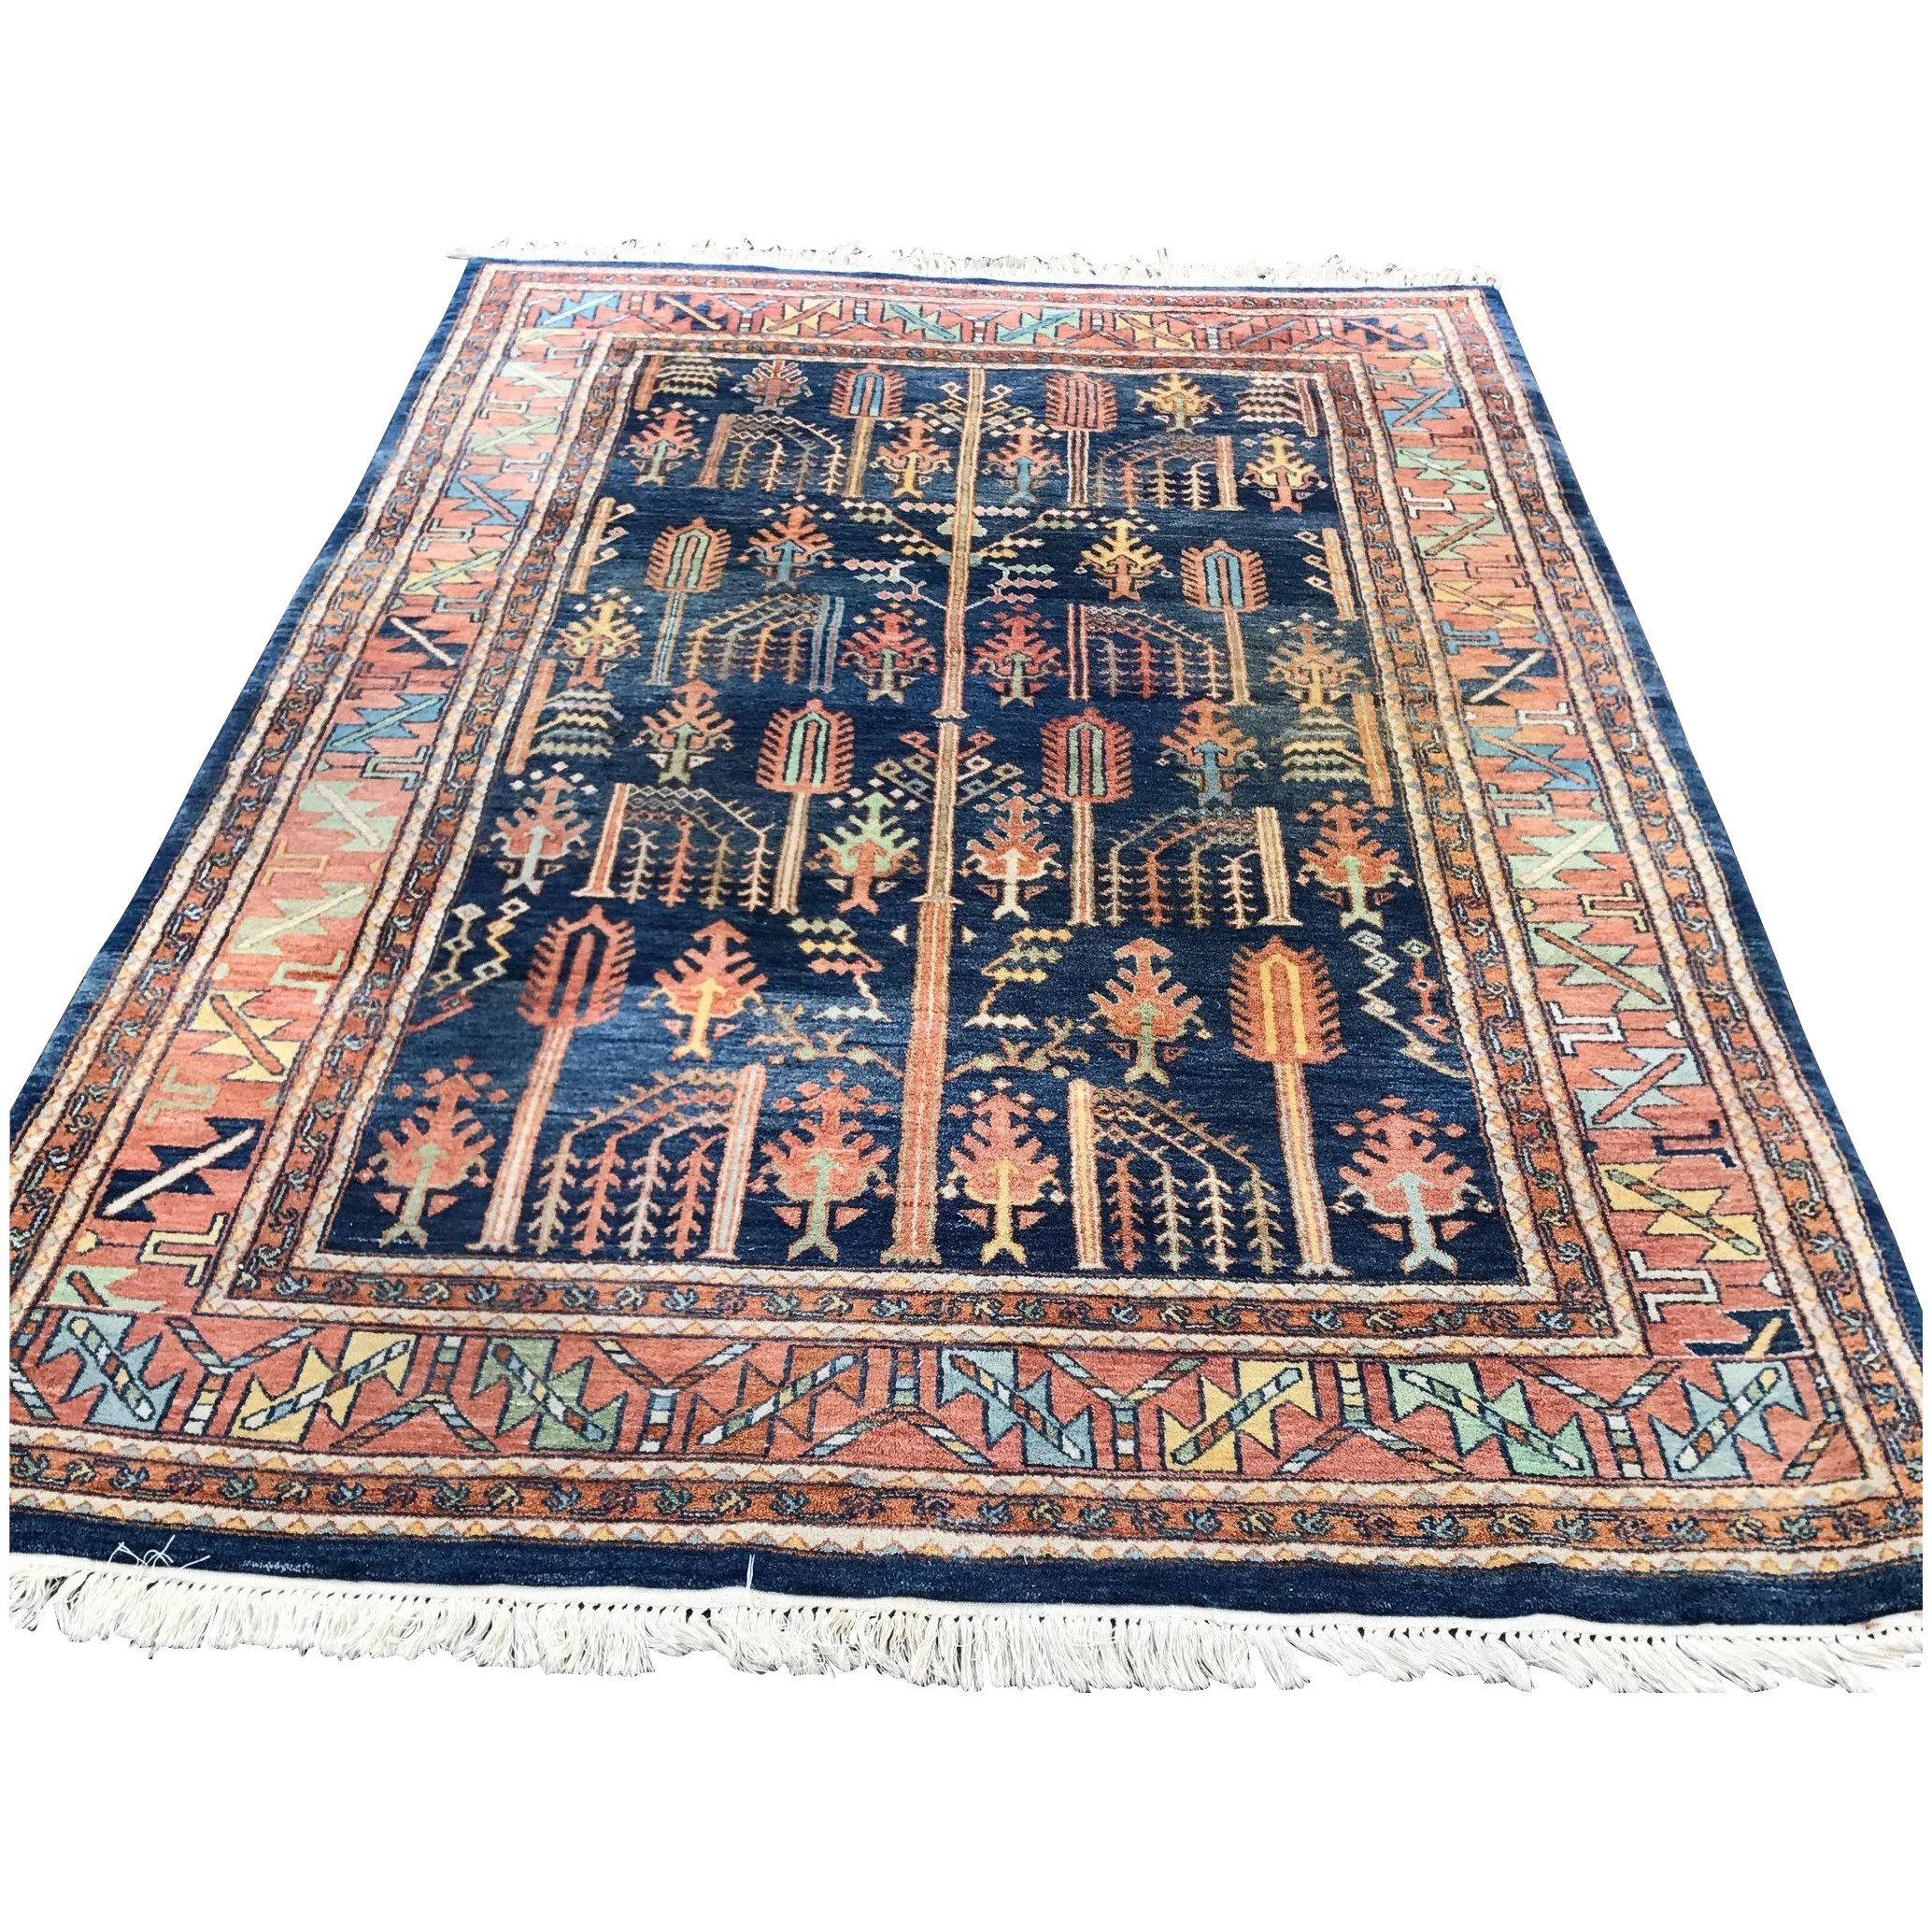 Good Size Hand-Knotted Oriental Carpet